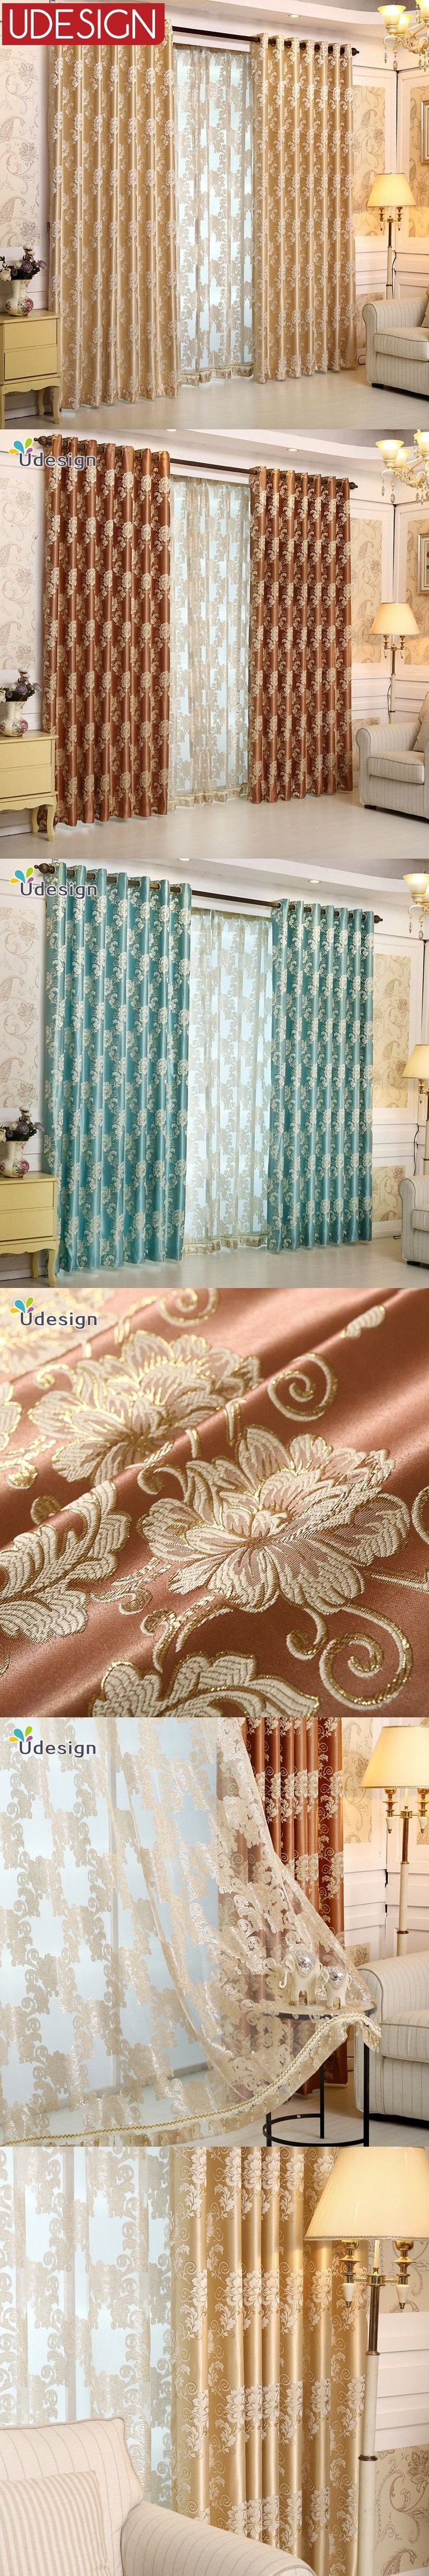 European Roray Luxury Curtains  Floral 60% Blackout Curtains for Living Room Tulle Curtains Window Blinds Drapes Rideaux Voile $23.64